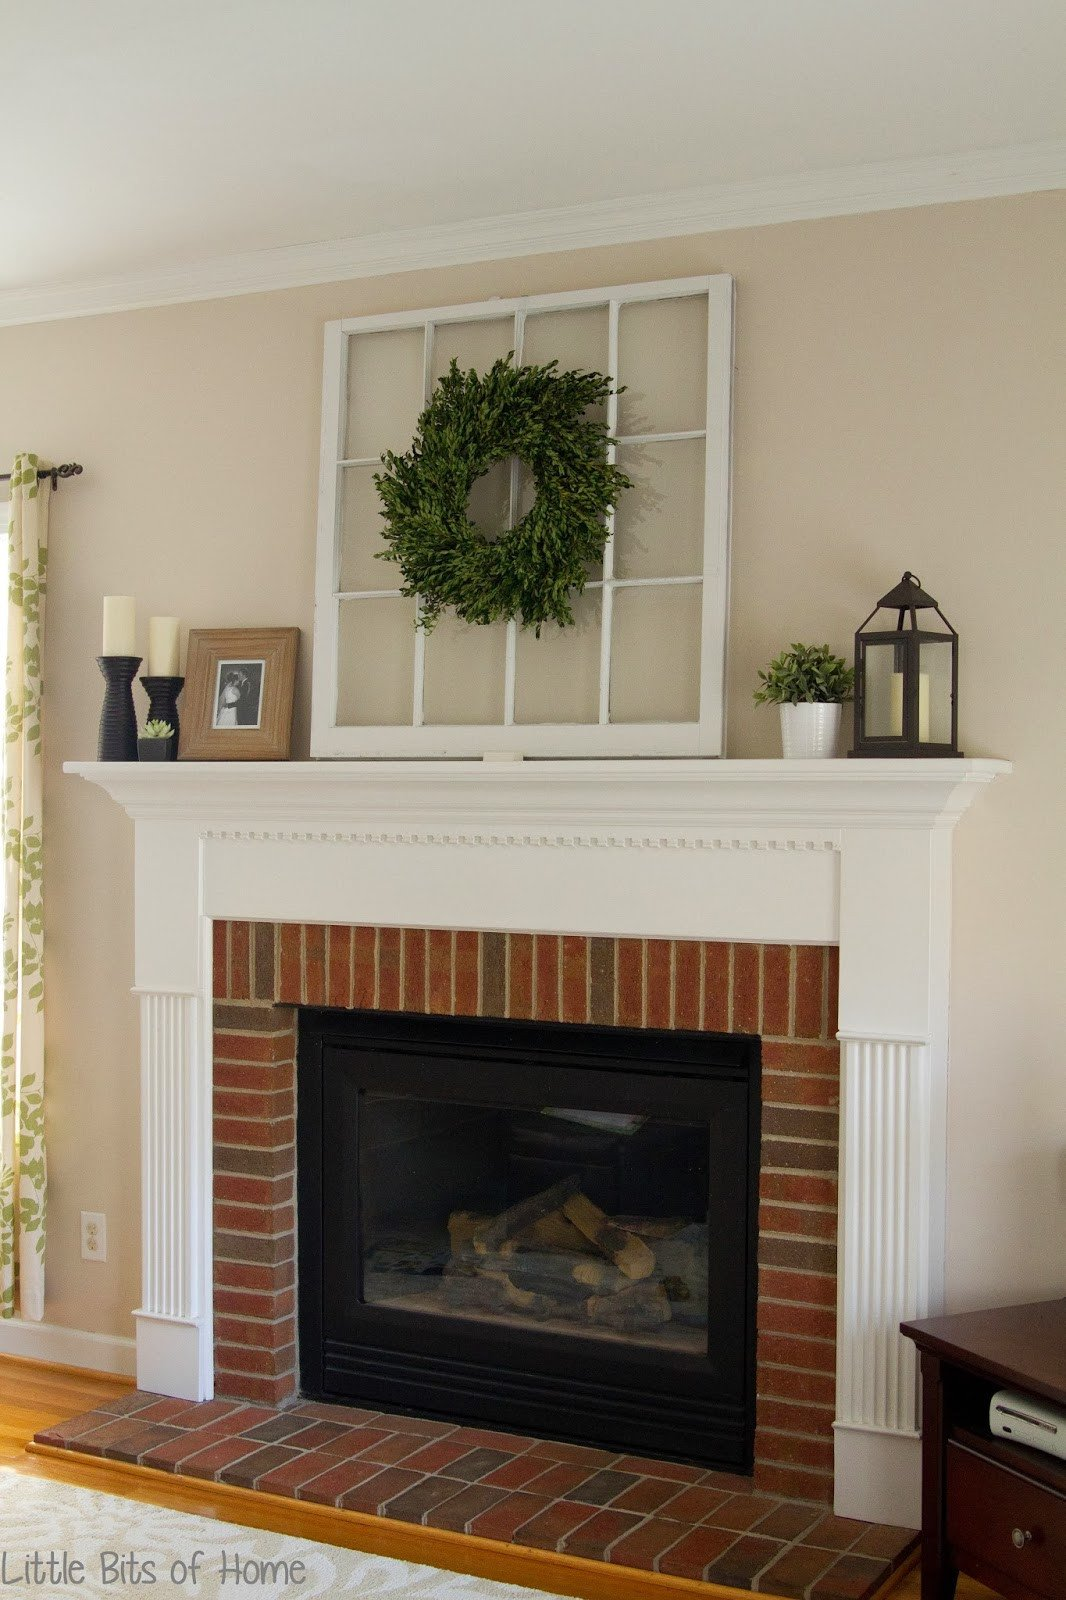 Ideas for Fireplace Mantel Decor Fresh Little Bits Of Home Everyday Fireplace Decor